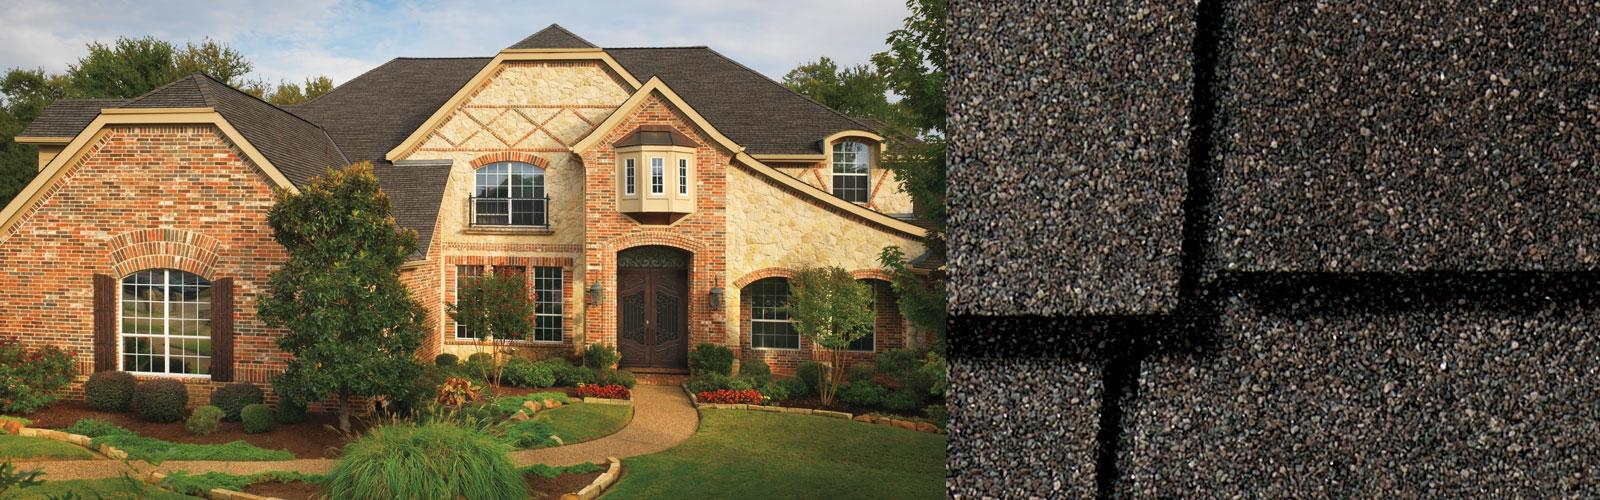 Done Right Roofing Images